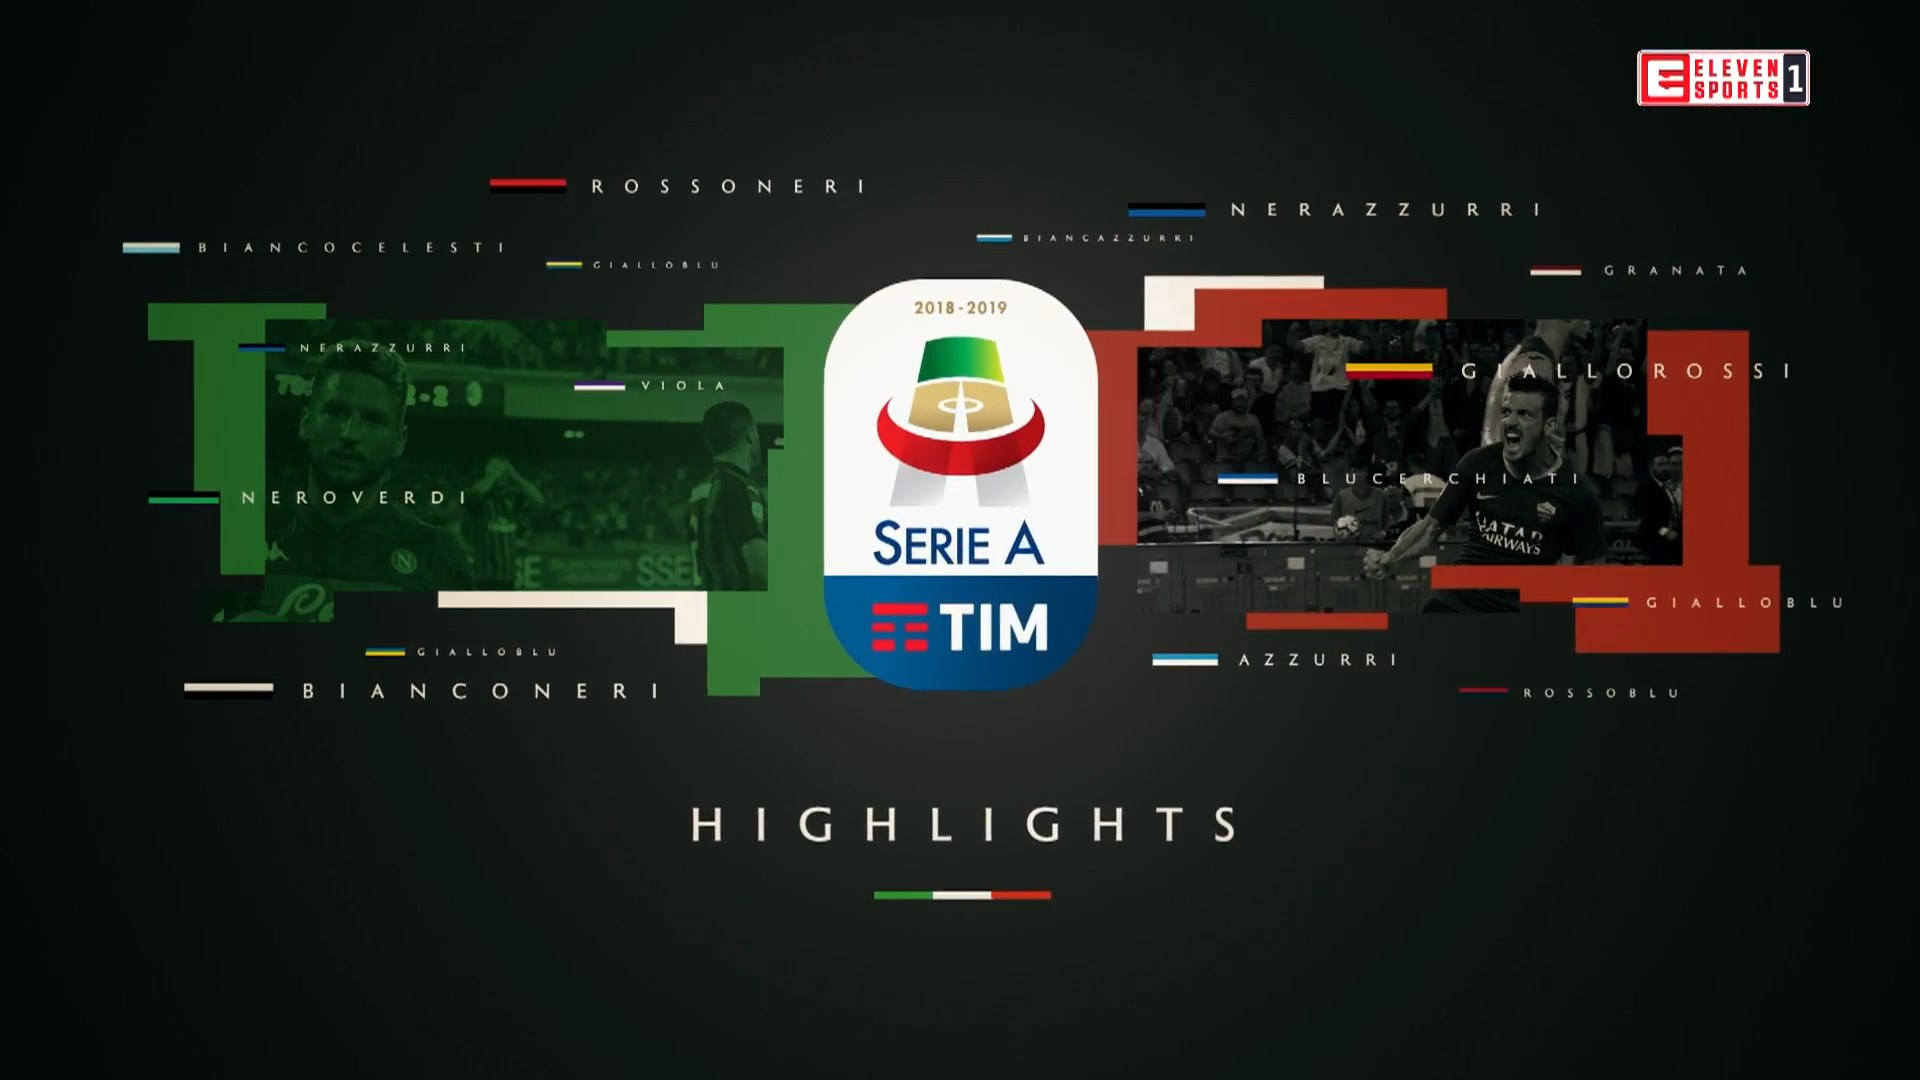 Serie A highlights